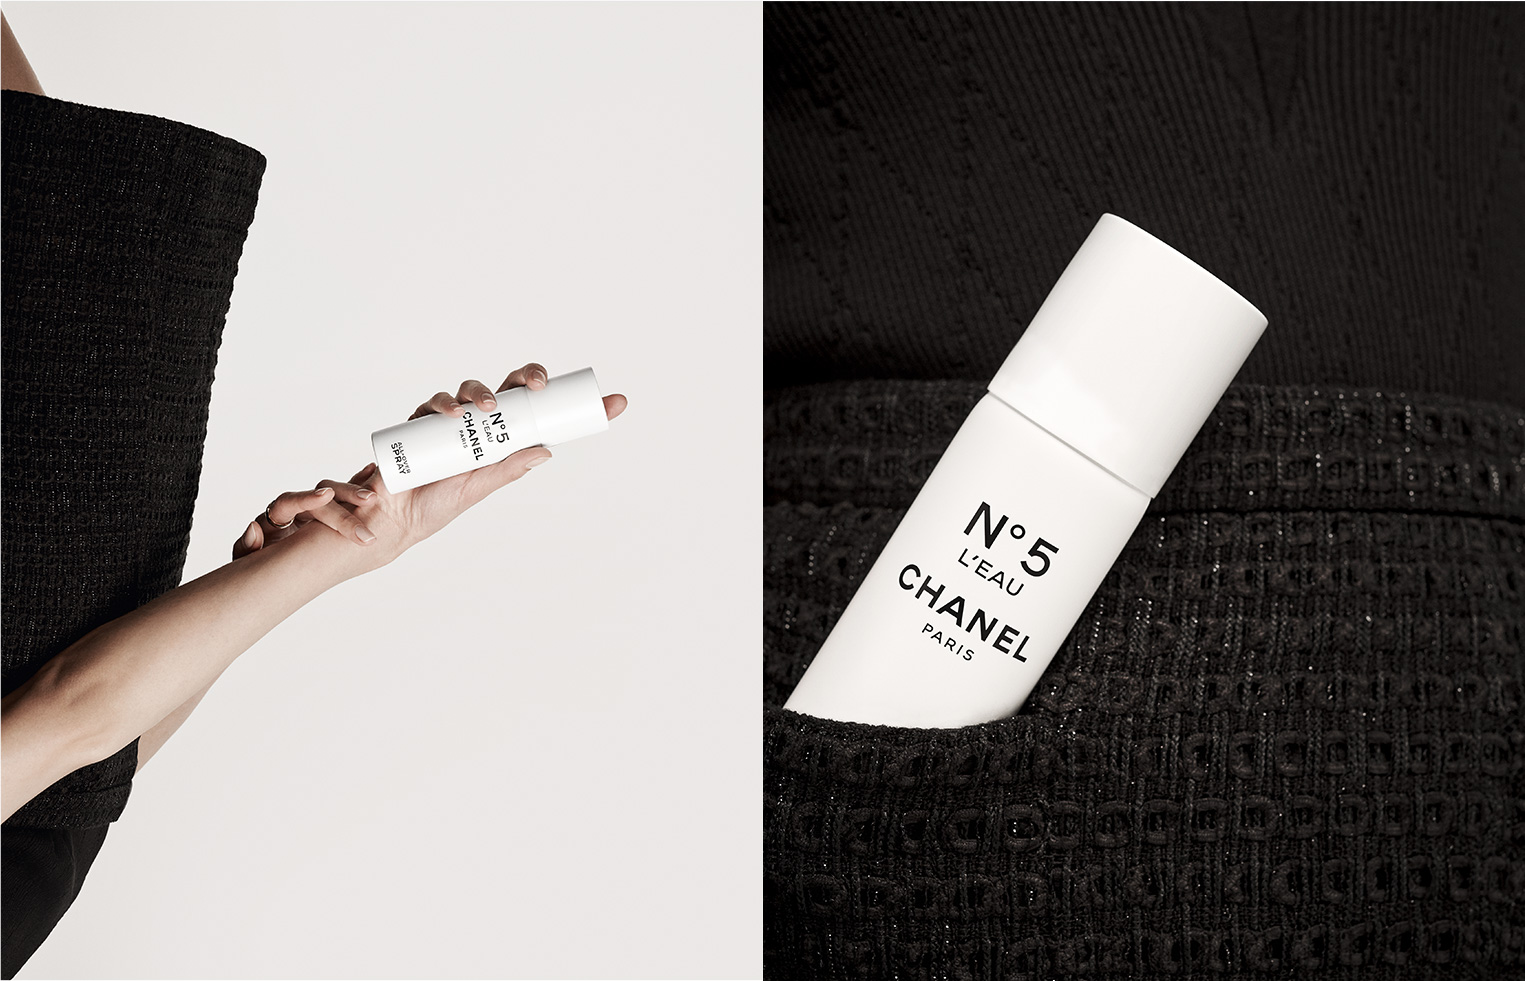 CHANEL N°5 L'EAU ALL-OVER SPARY ON HAND CREAM Esprit de Gabrielle espritdegabrielle.com